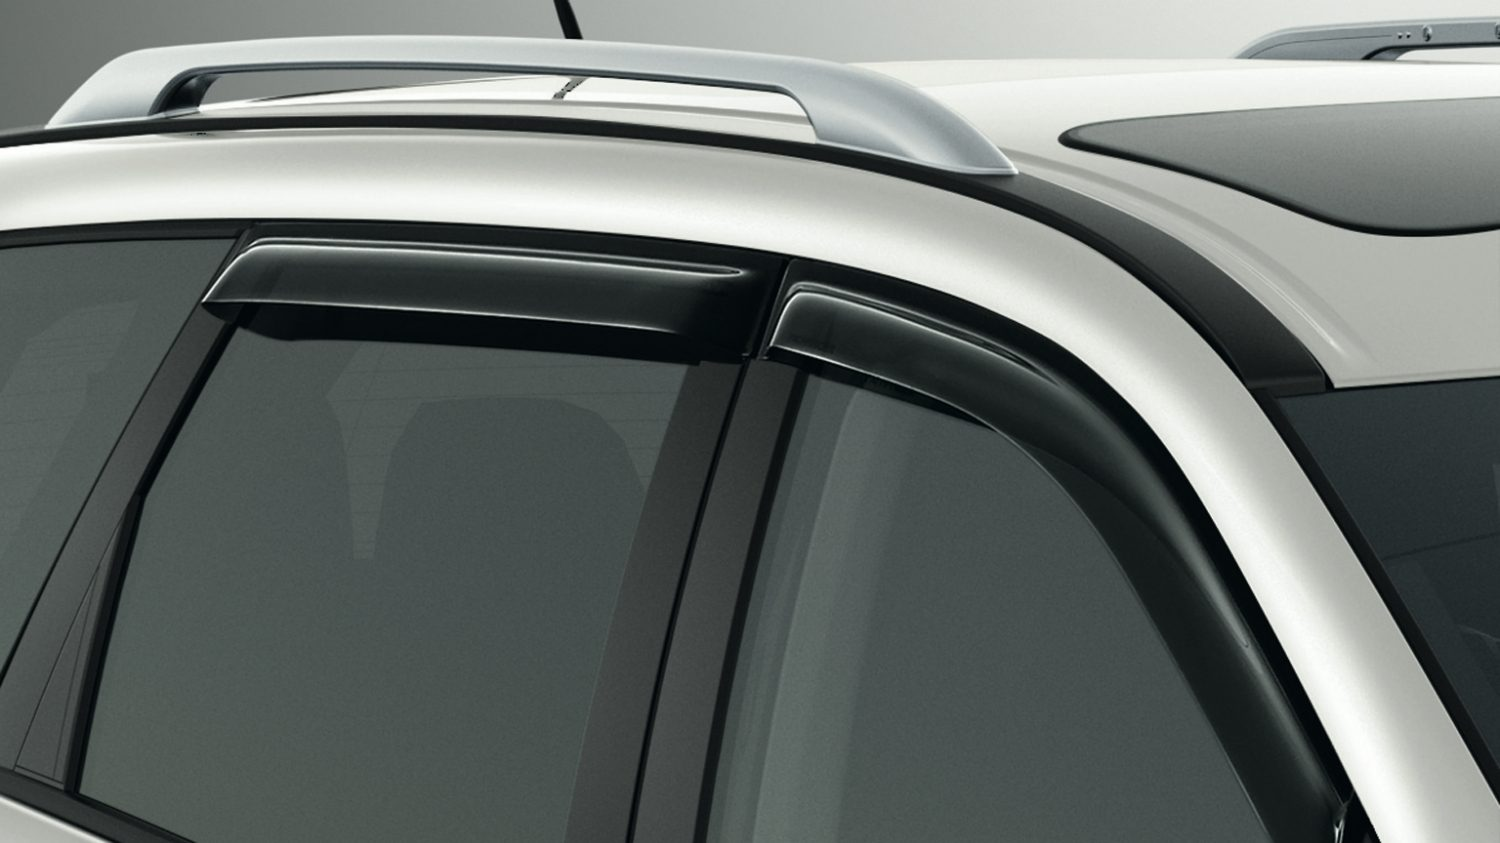 Nissan Pathfinder - Wind deflectors